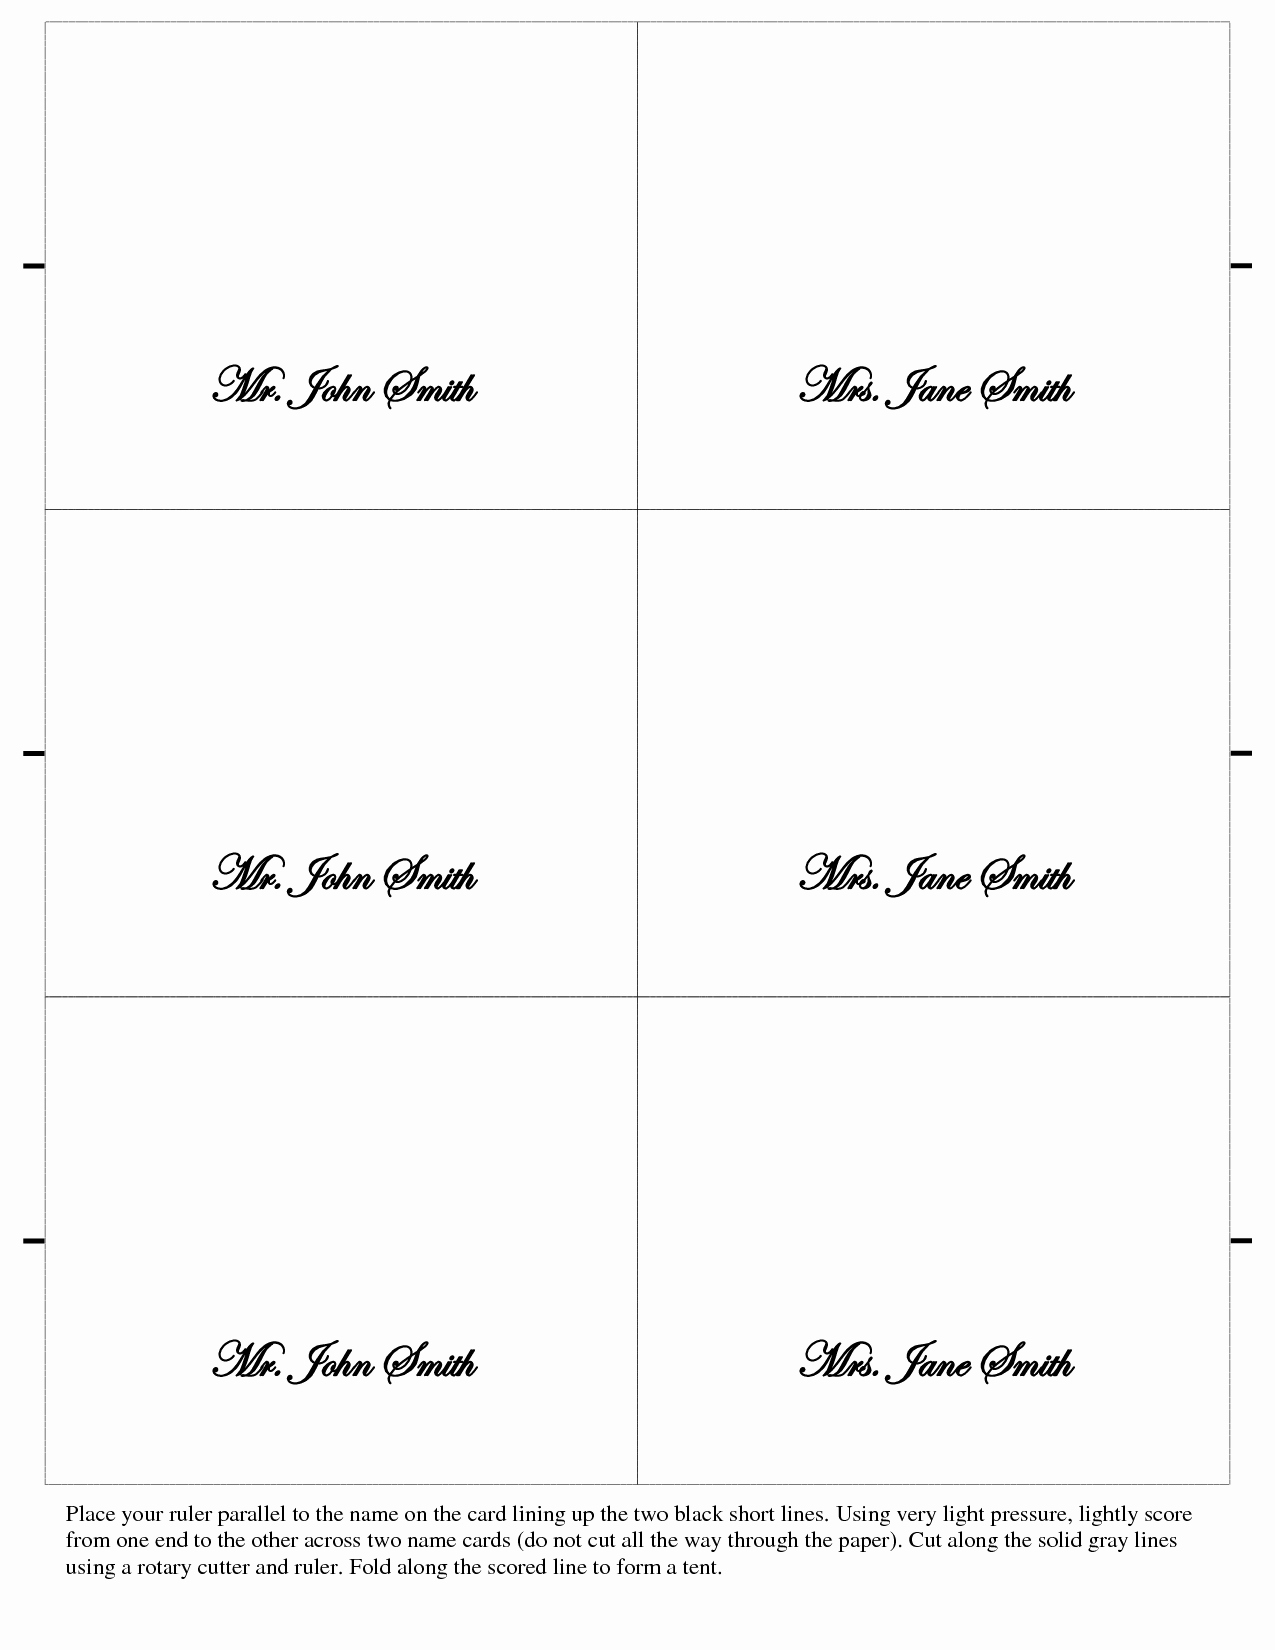 024 Free Printable Place Cards Template Ideas Blank Card Elegant - Free Printable Place Cards Template